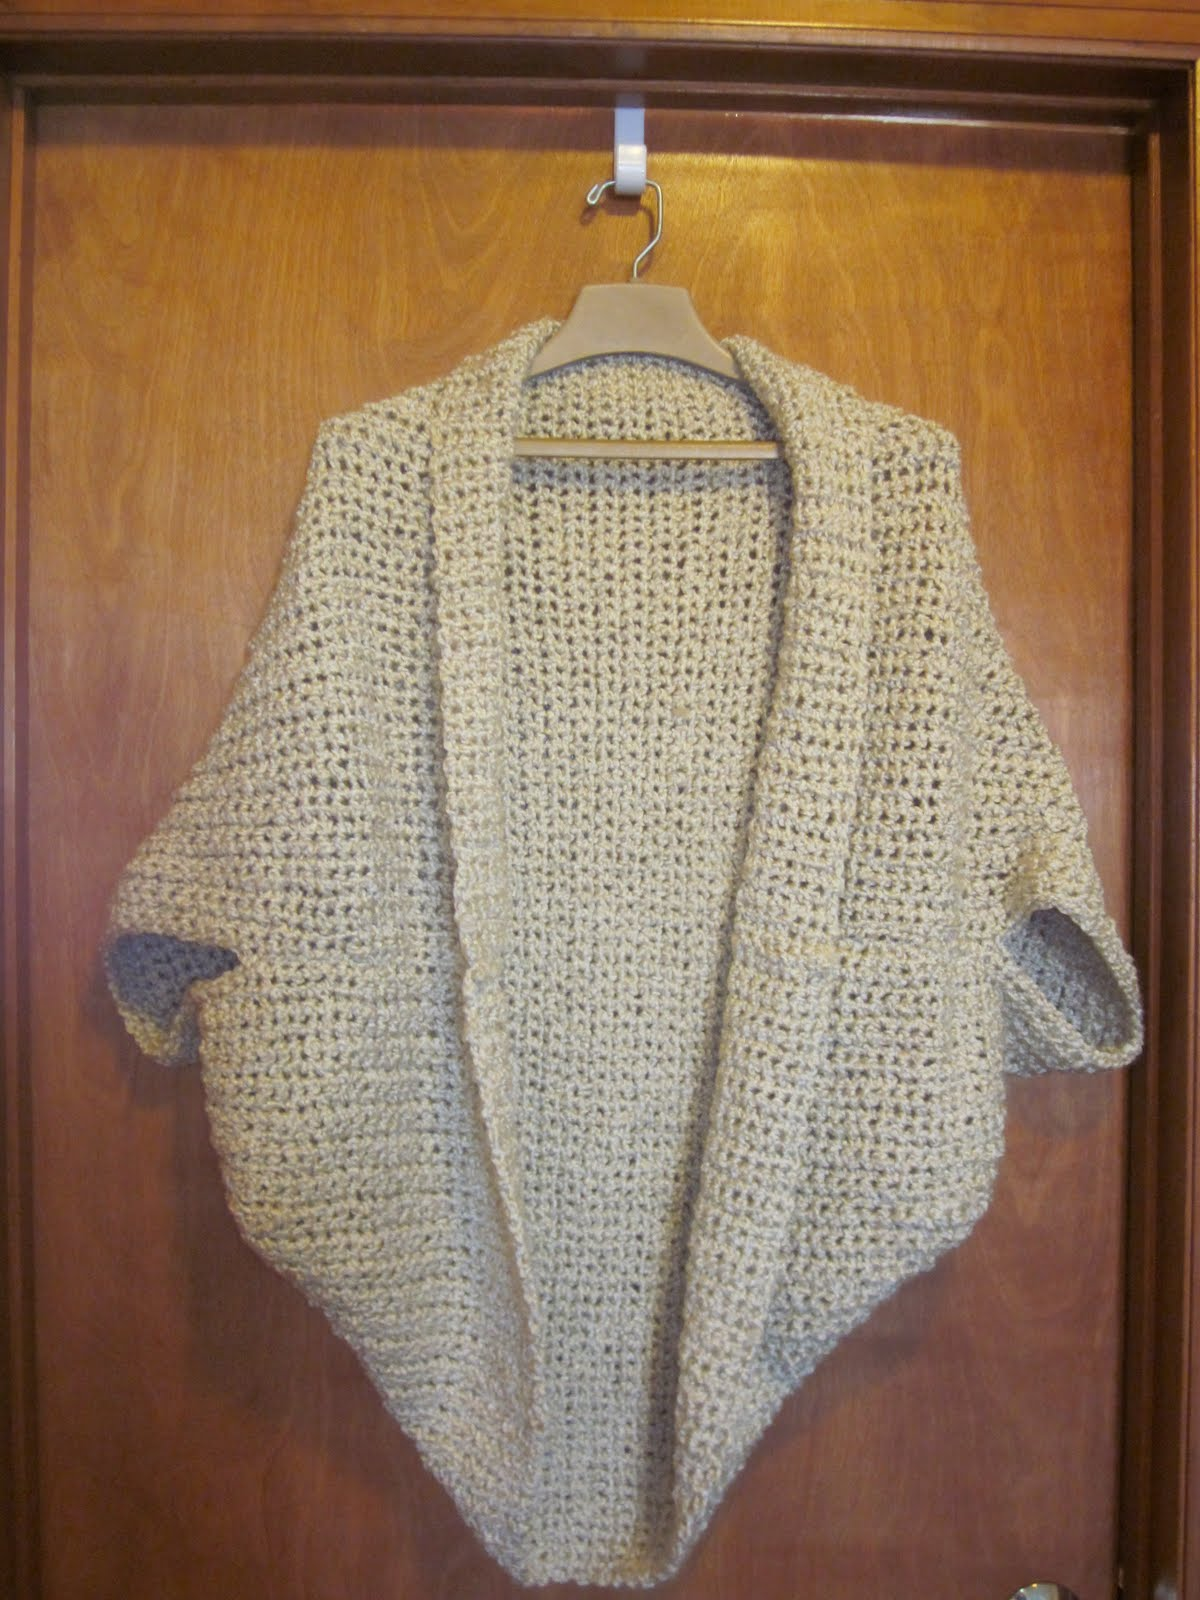 Shrug Knitting Patterns For Beginners : Braq!3, DIY: Comfy Crochet Shrug